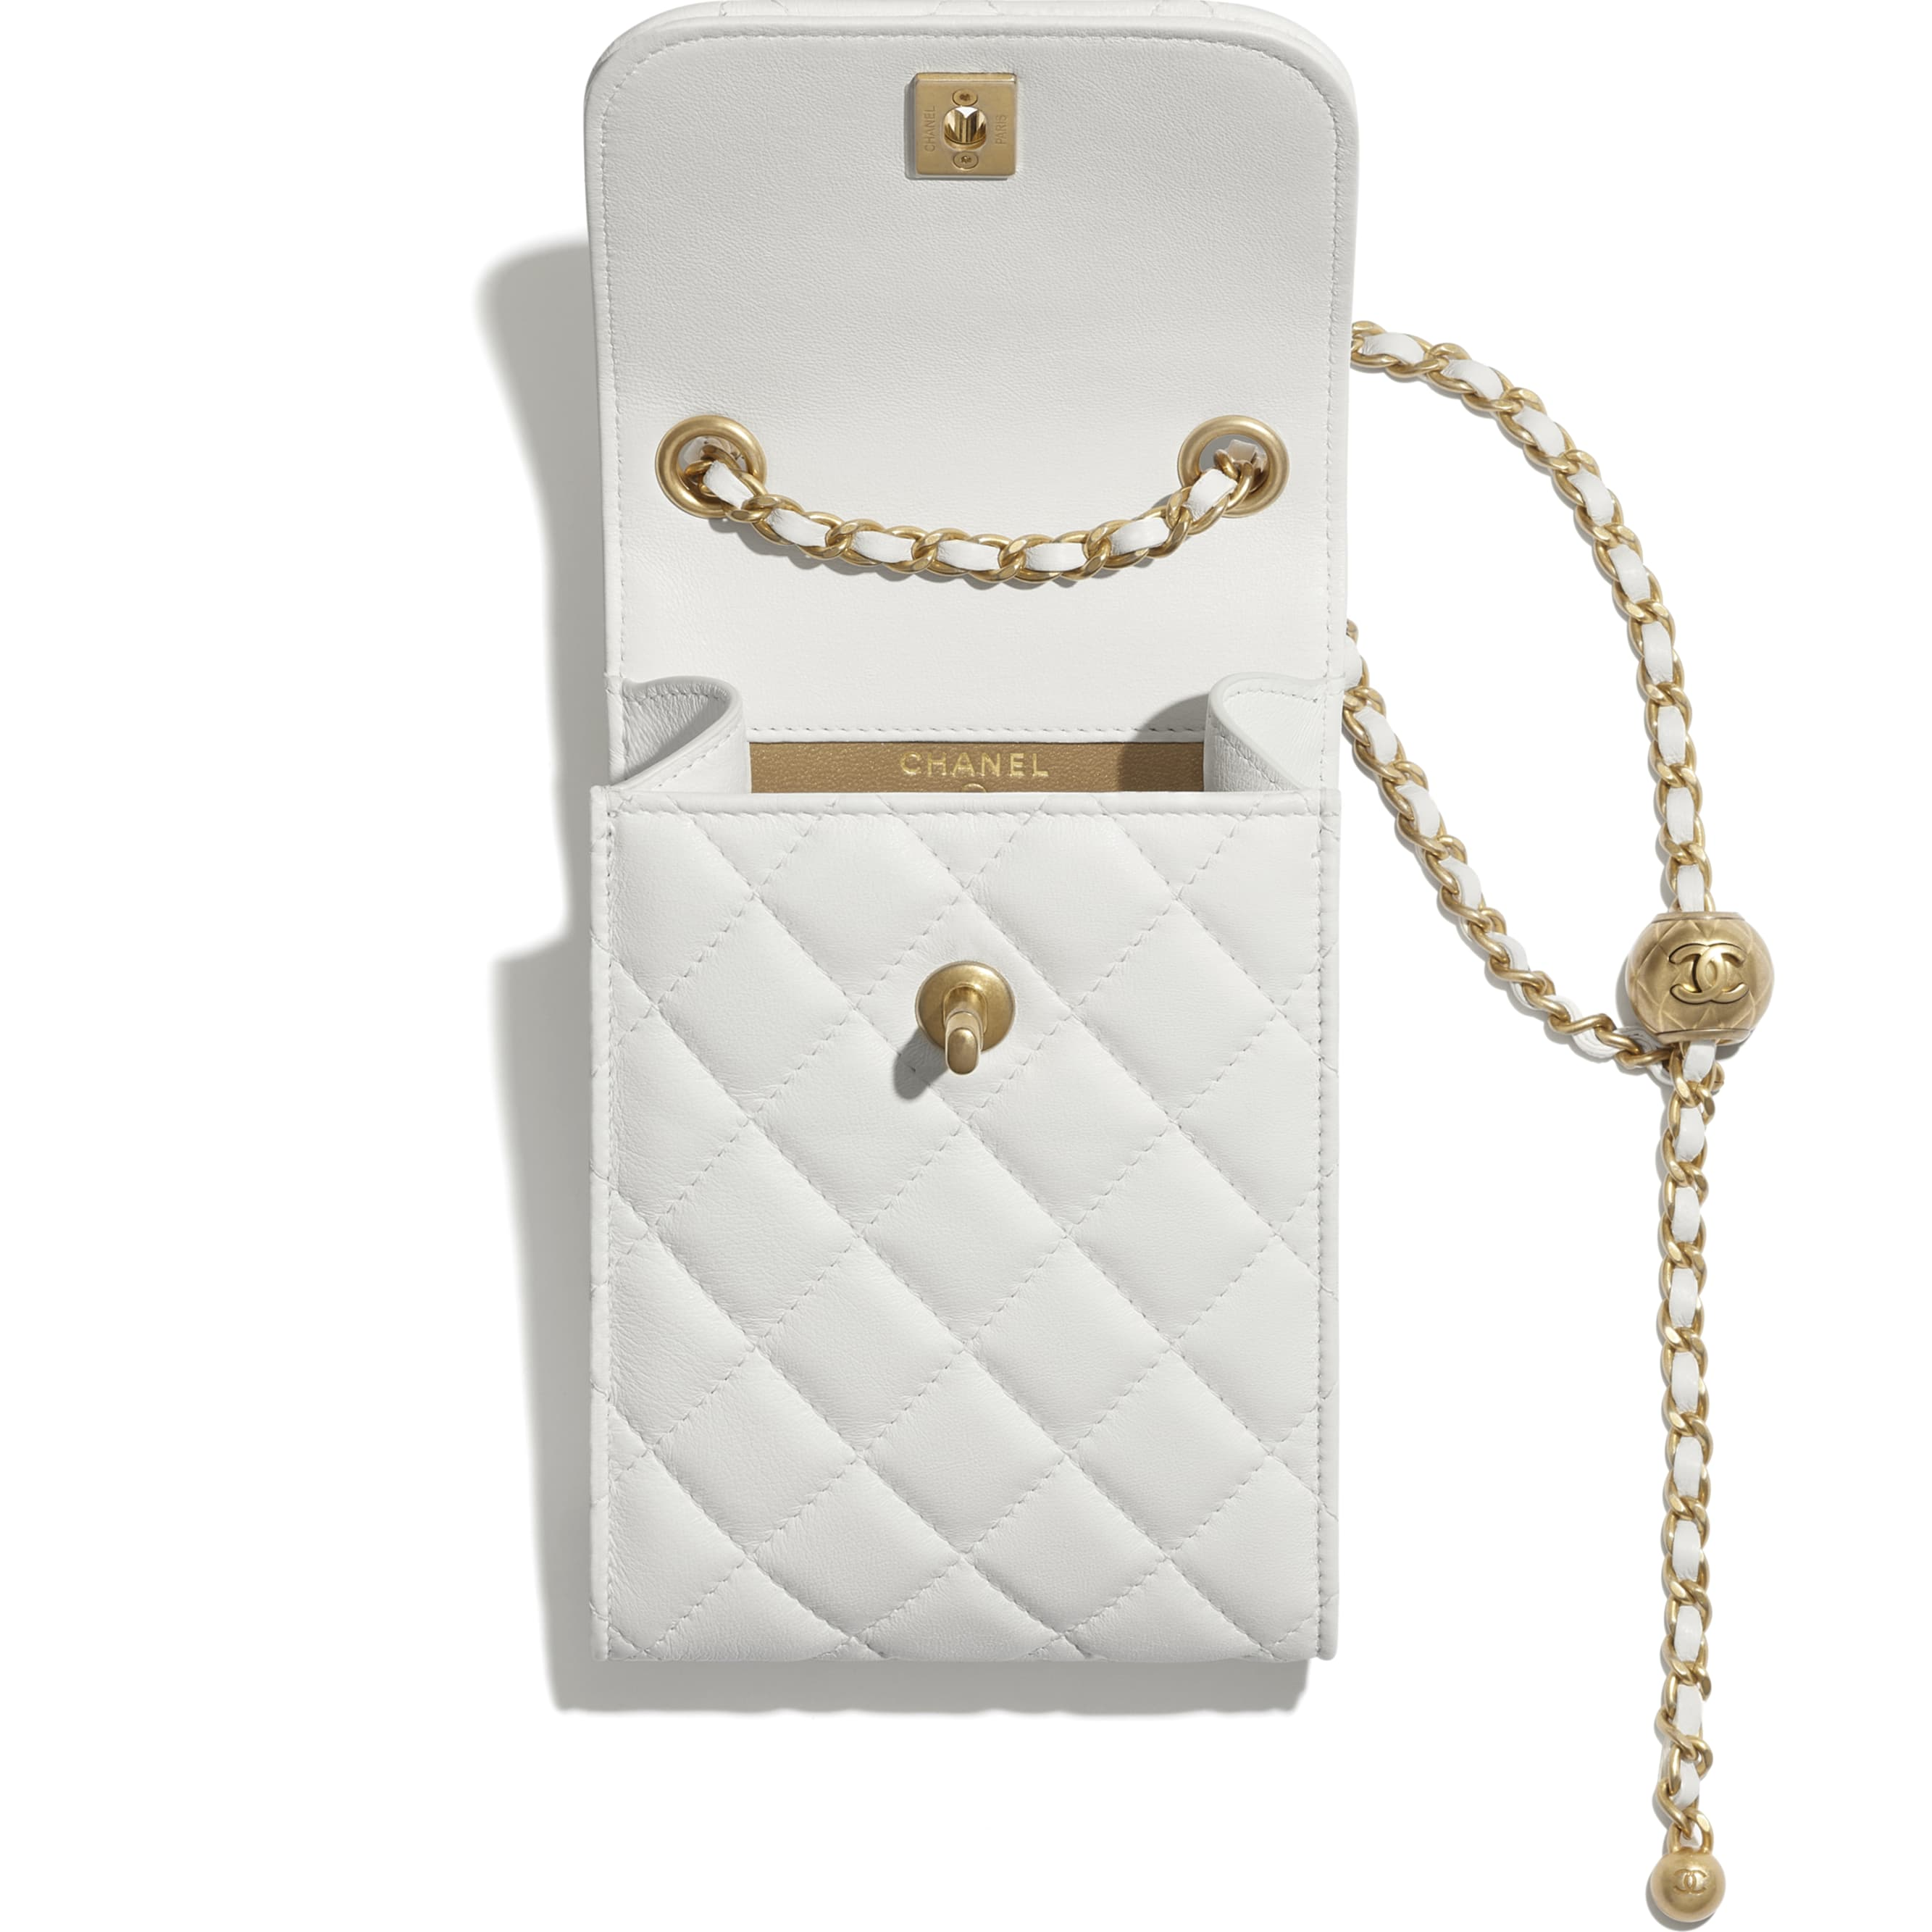 Phone Holder With Chain - White - Lambskin - CHANEL - Alternative view - see standard sized version